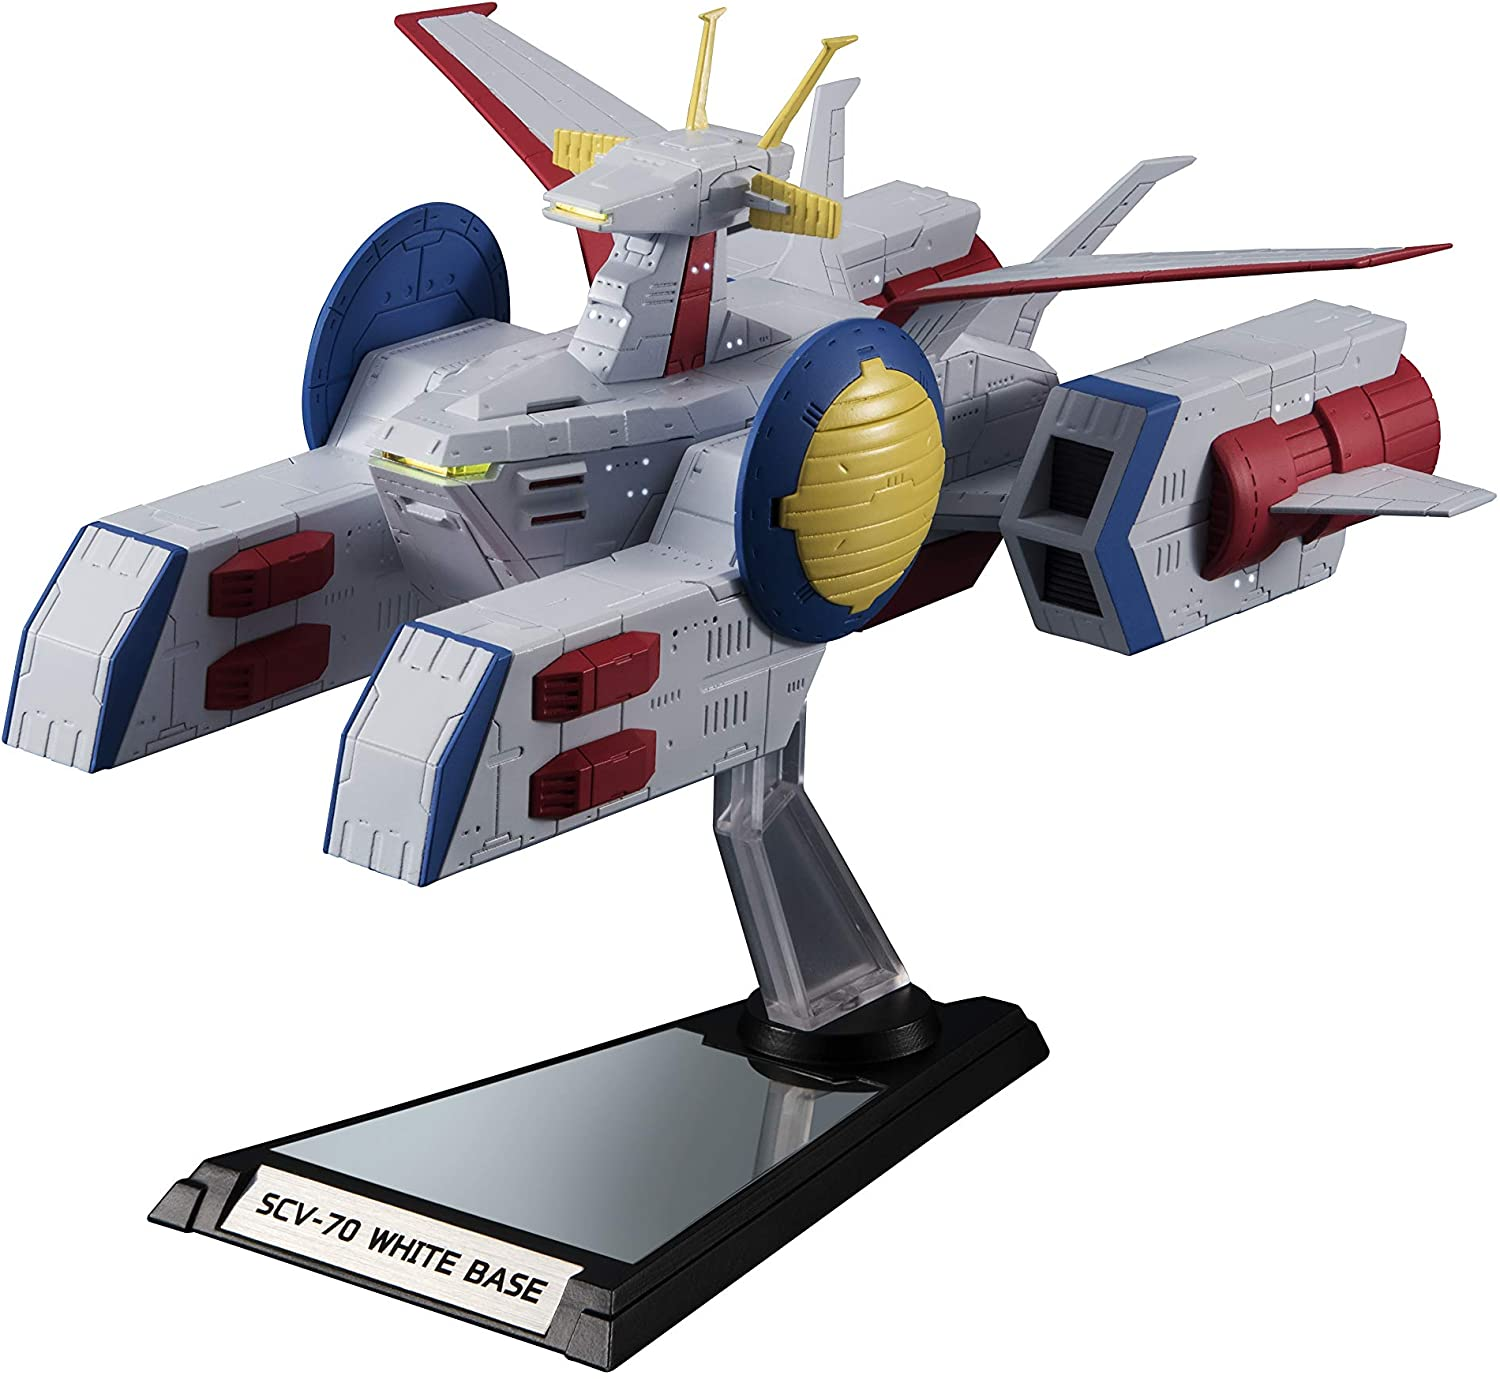 TAMASHII NATIONS Bandai Kikan-Taizen Scv-70 White Base Mobile Suit Gundam 1/1700